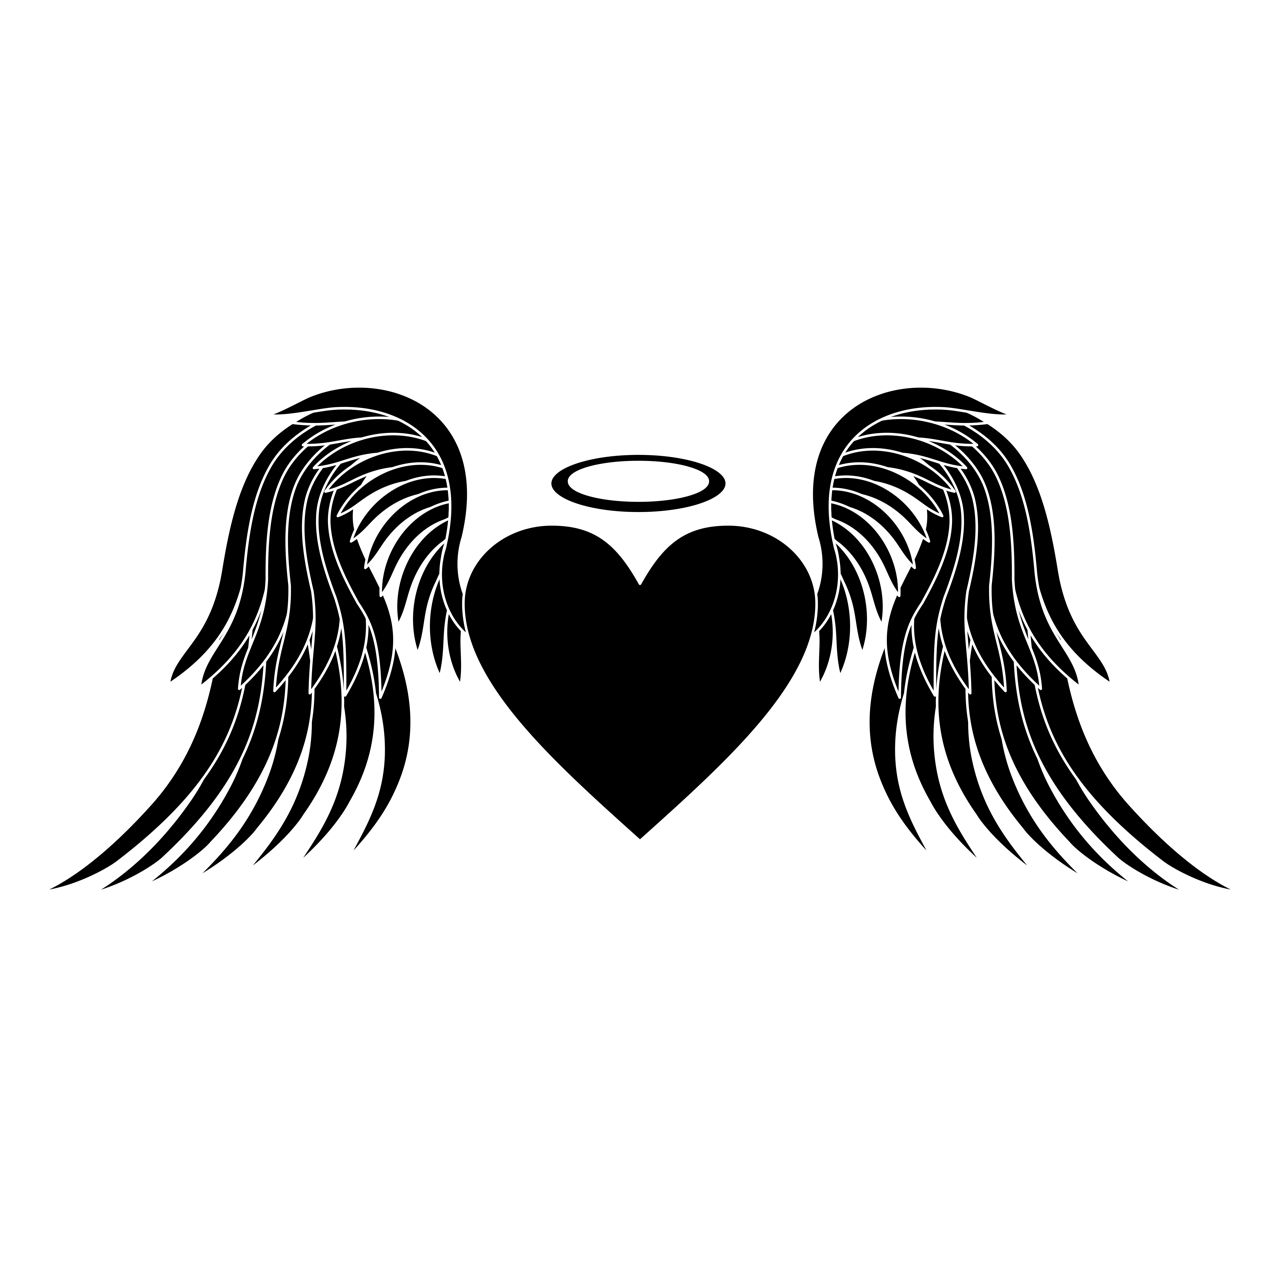 Heart With Wings Tattoo Meaning